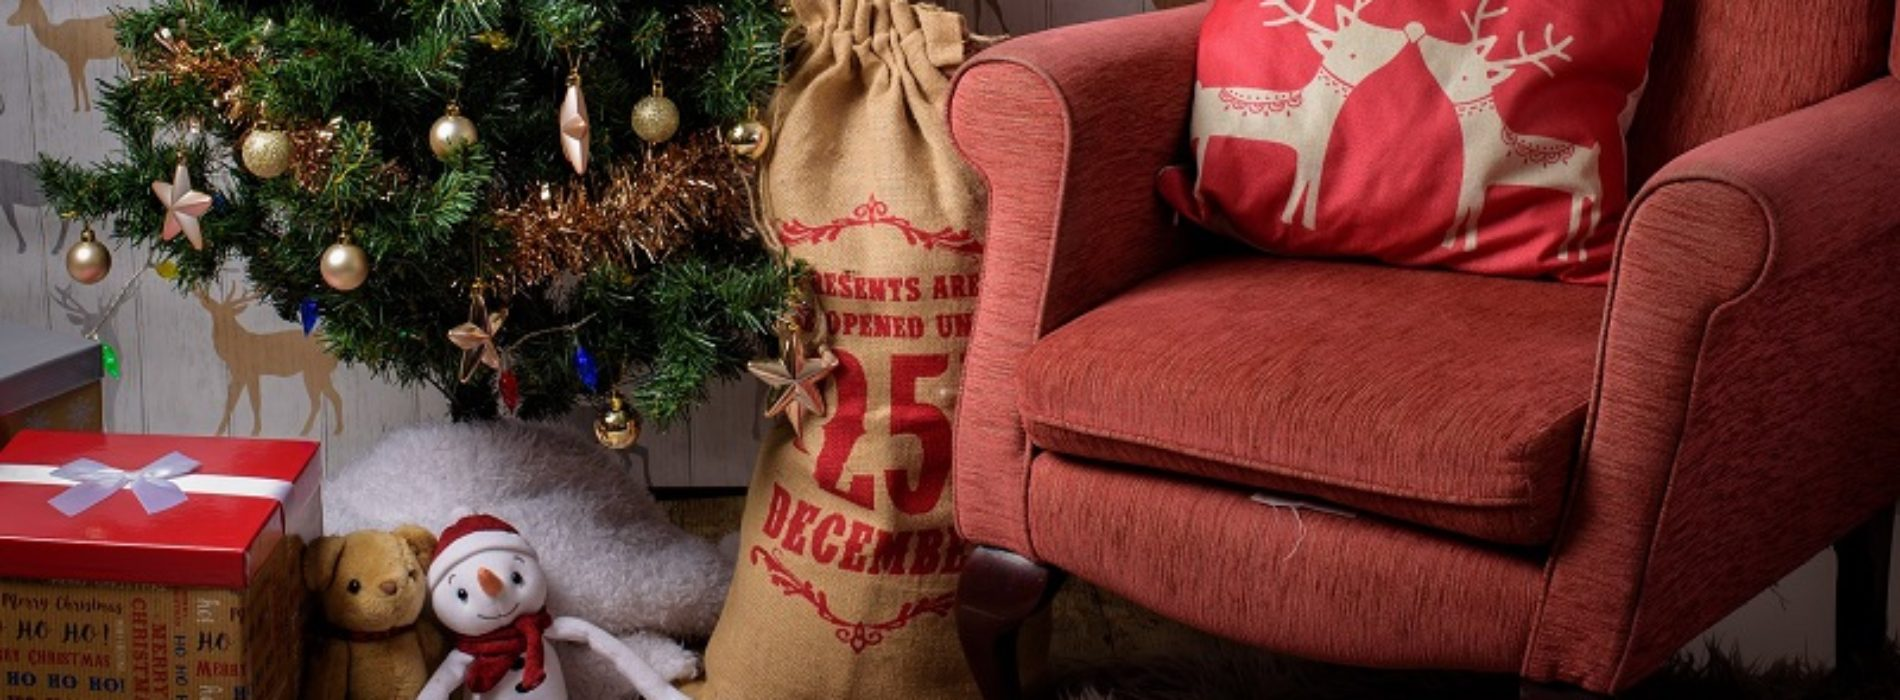 5 practical and stylish Christmas stocking fillers for someone disabled